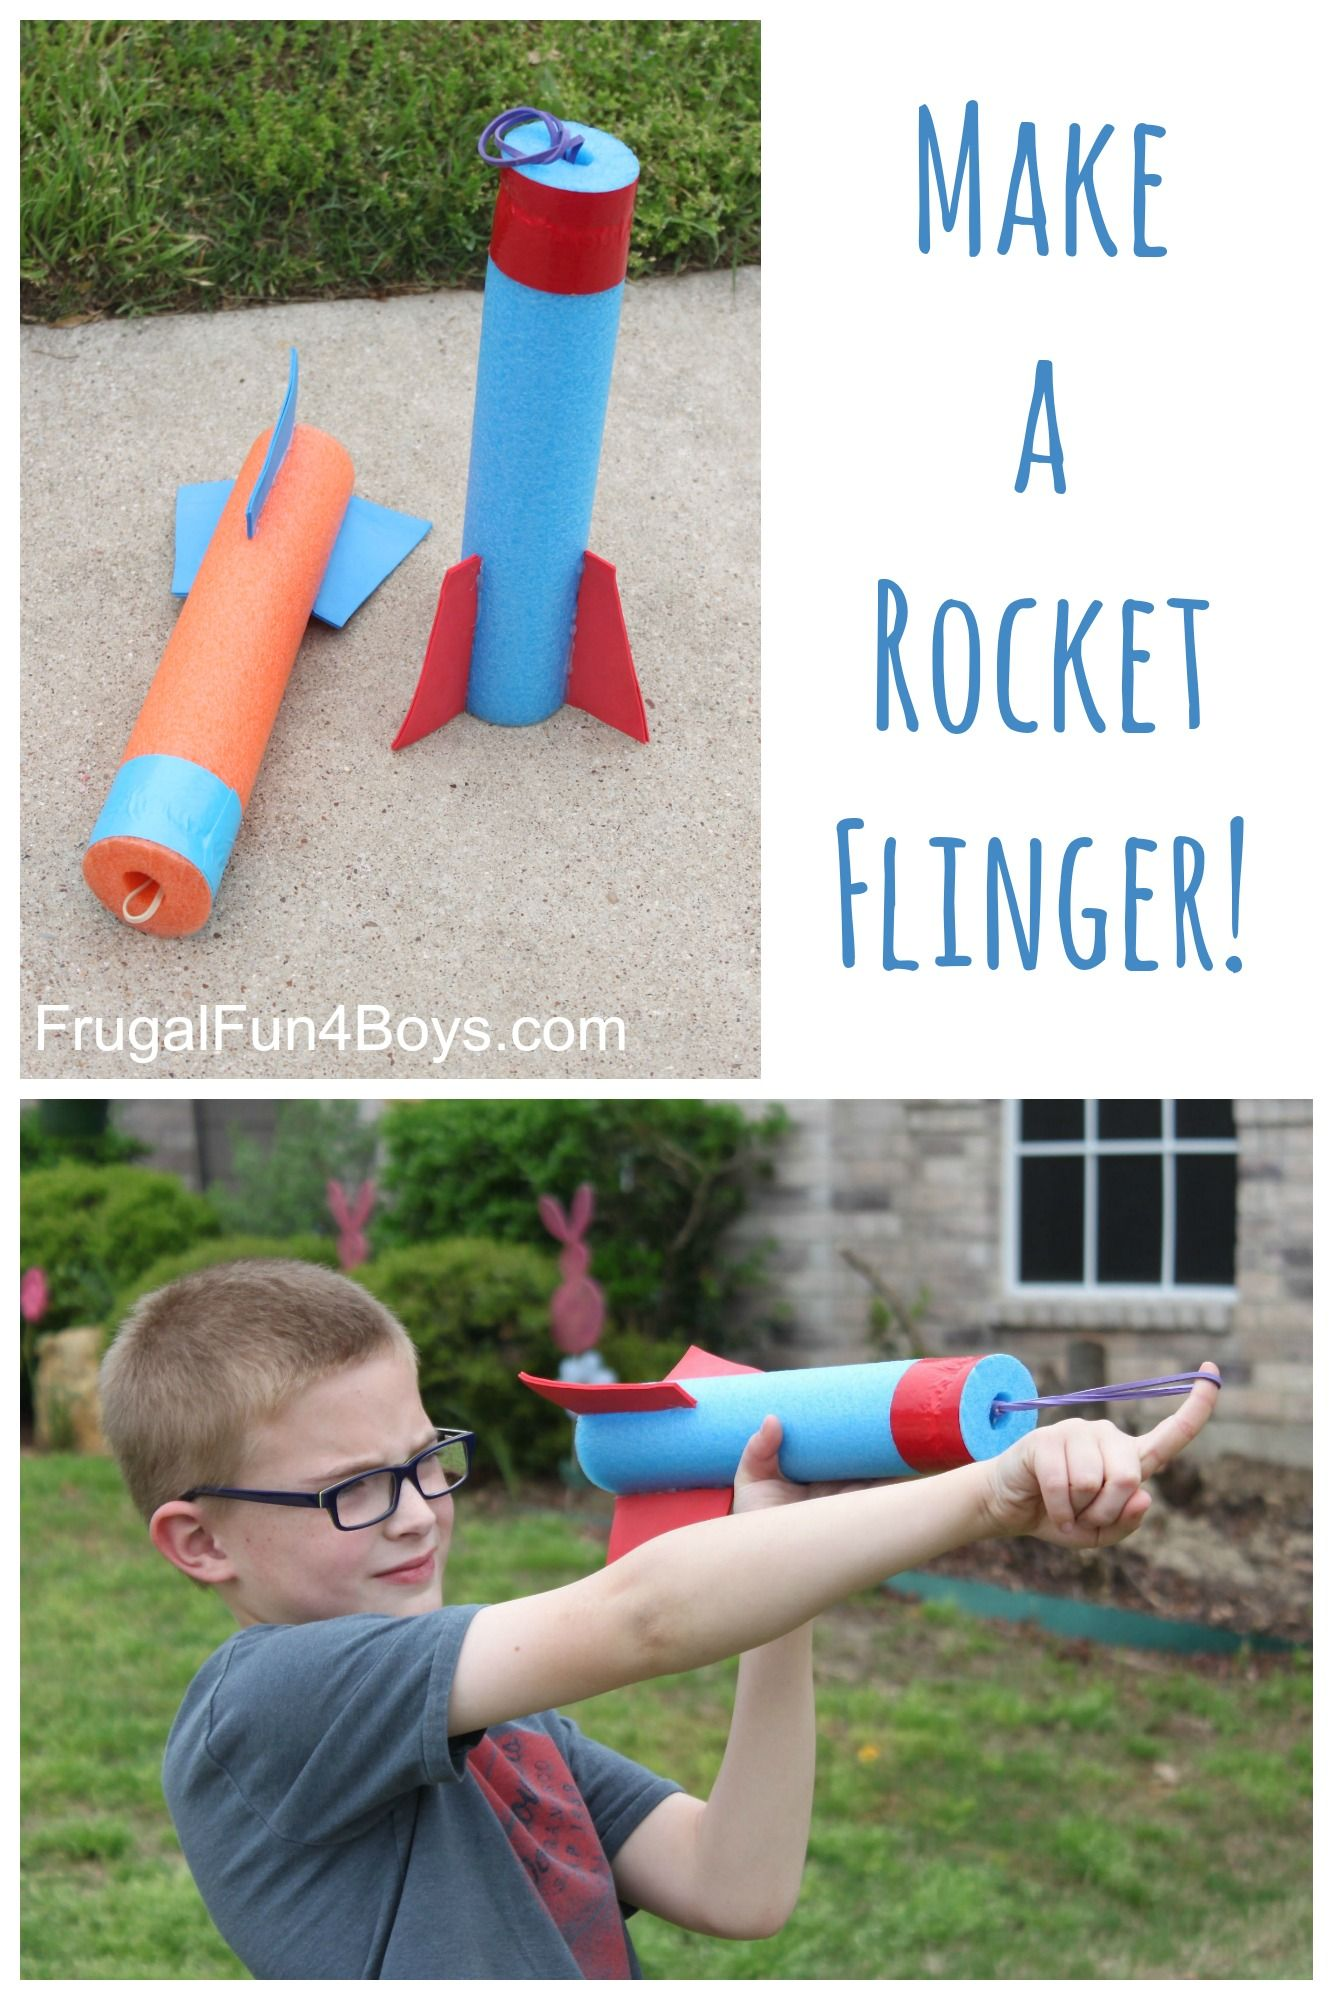 How To Make A Pool Noodle Rocket Flinger Frugal Fun For Boys And Girls Maker Fun Factory Vbs Maker Fun Factory Activities For Kids